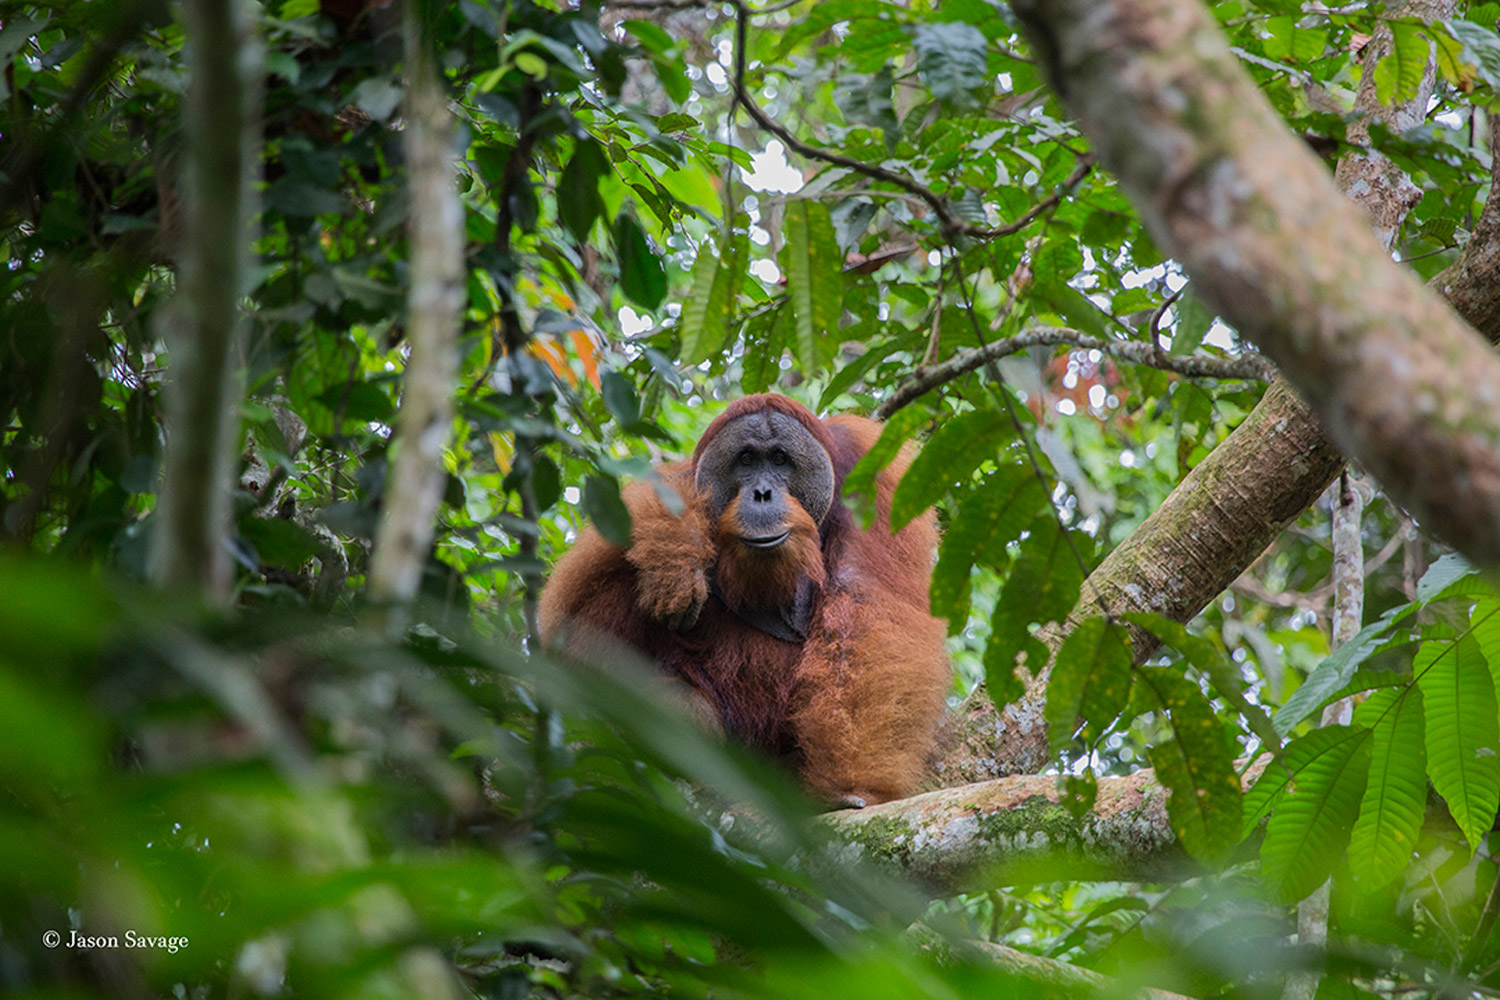 Sumatra - A Fragile Ecosystem - Part I - Jason Savage - Conjour Wildlife Photography Feature - Feature Image - Orangutan - 1